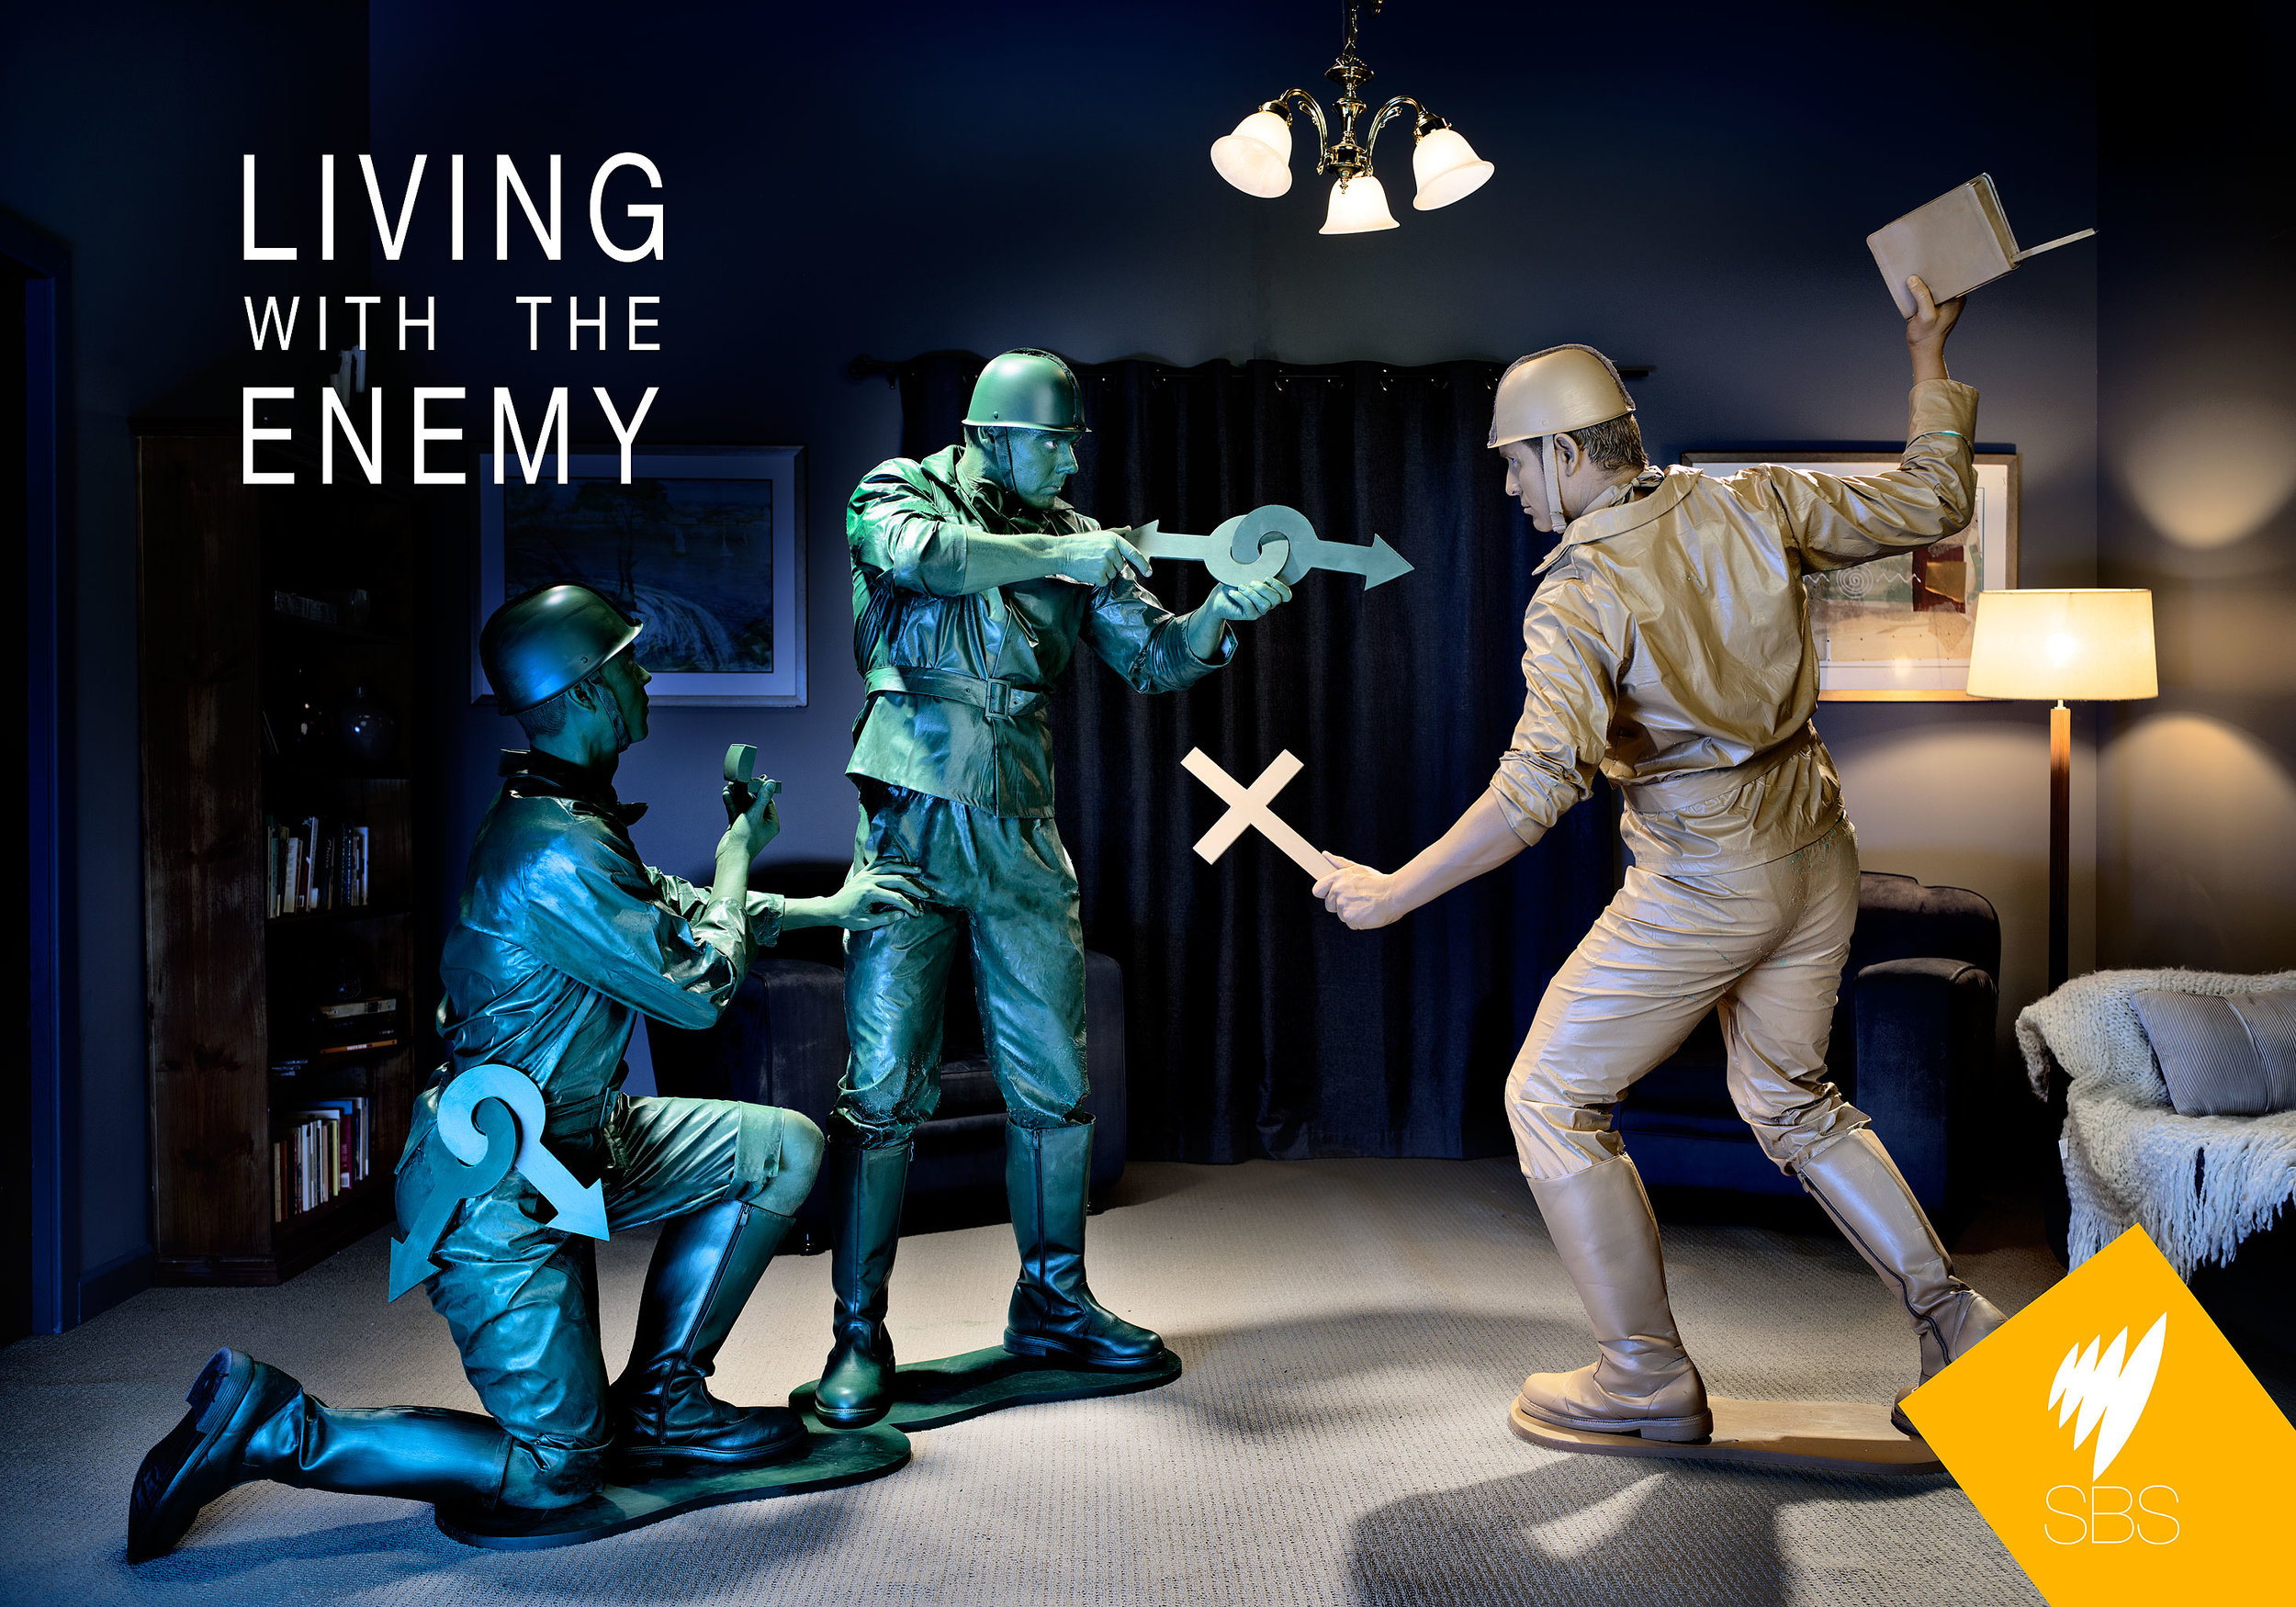 Living with the Enemy - Client: SBS (tv network)Agency: SBSMedia: StillsUsage: Online & PrintI shot this image for a promotion for the SBS reality show Living with the Enemy. The Art department worked overtime to create this set on one of their sound stages. …Read more